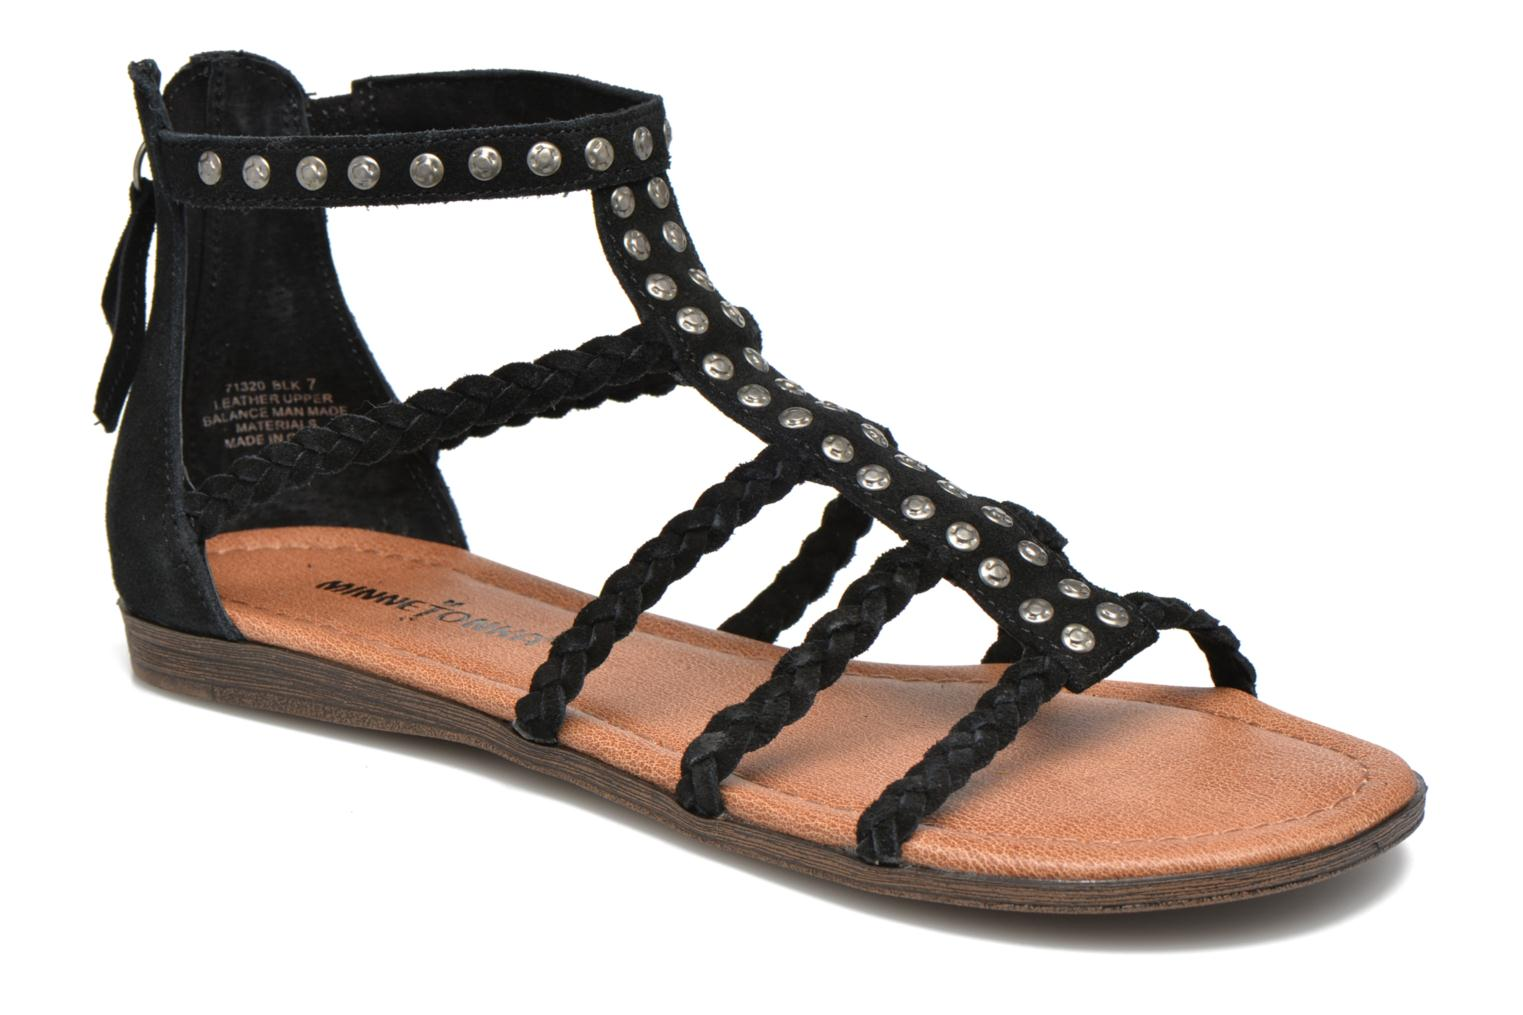 Catalina Sandal by MinnetonkaRebajas - 30%